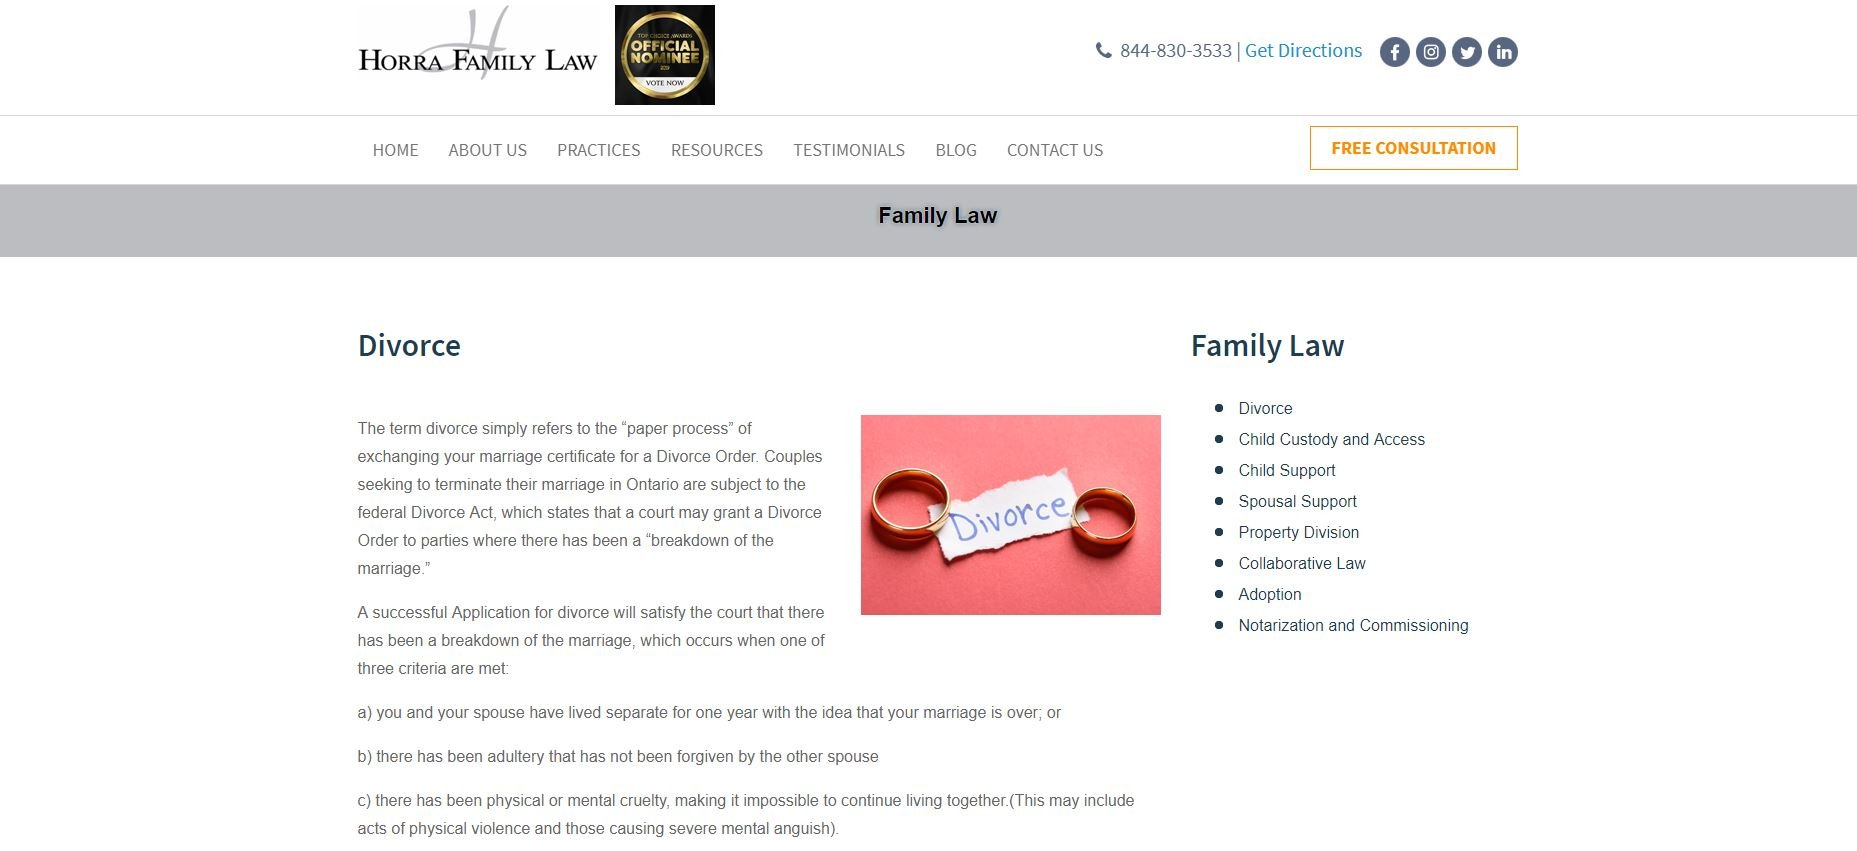 Family law navigation